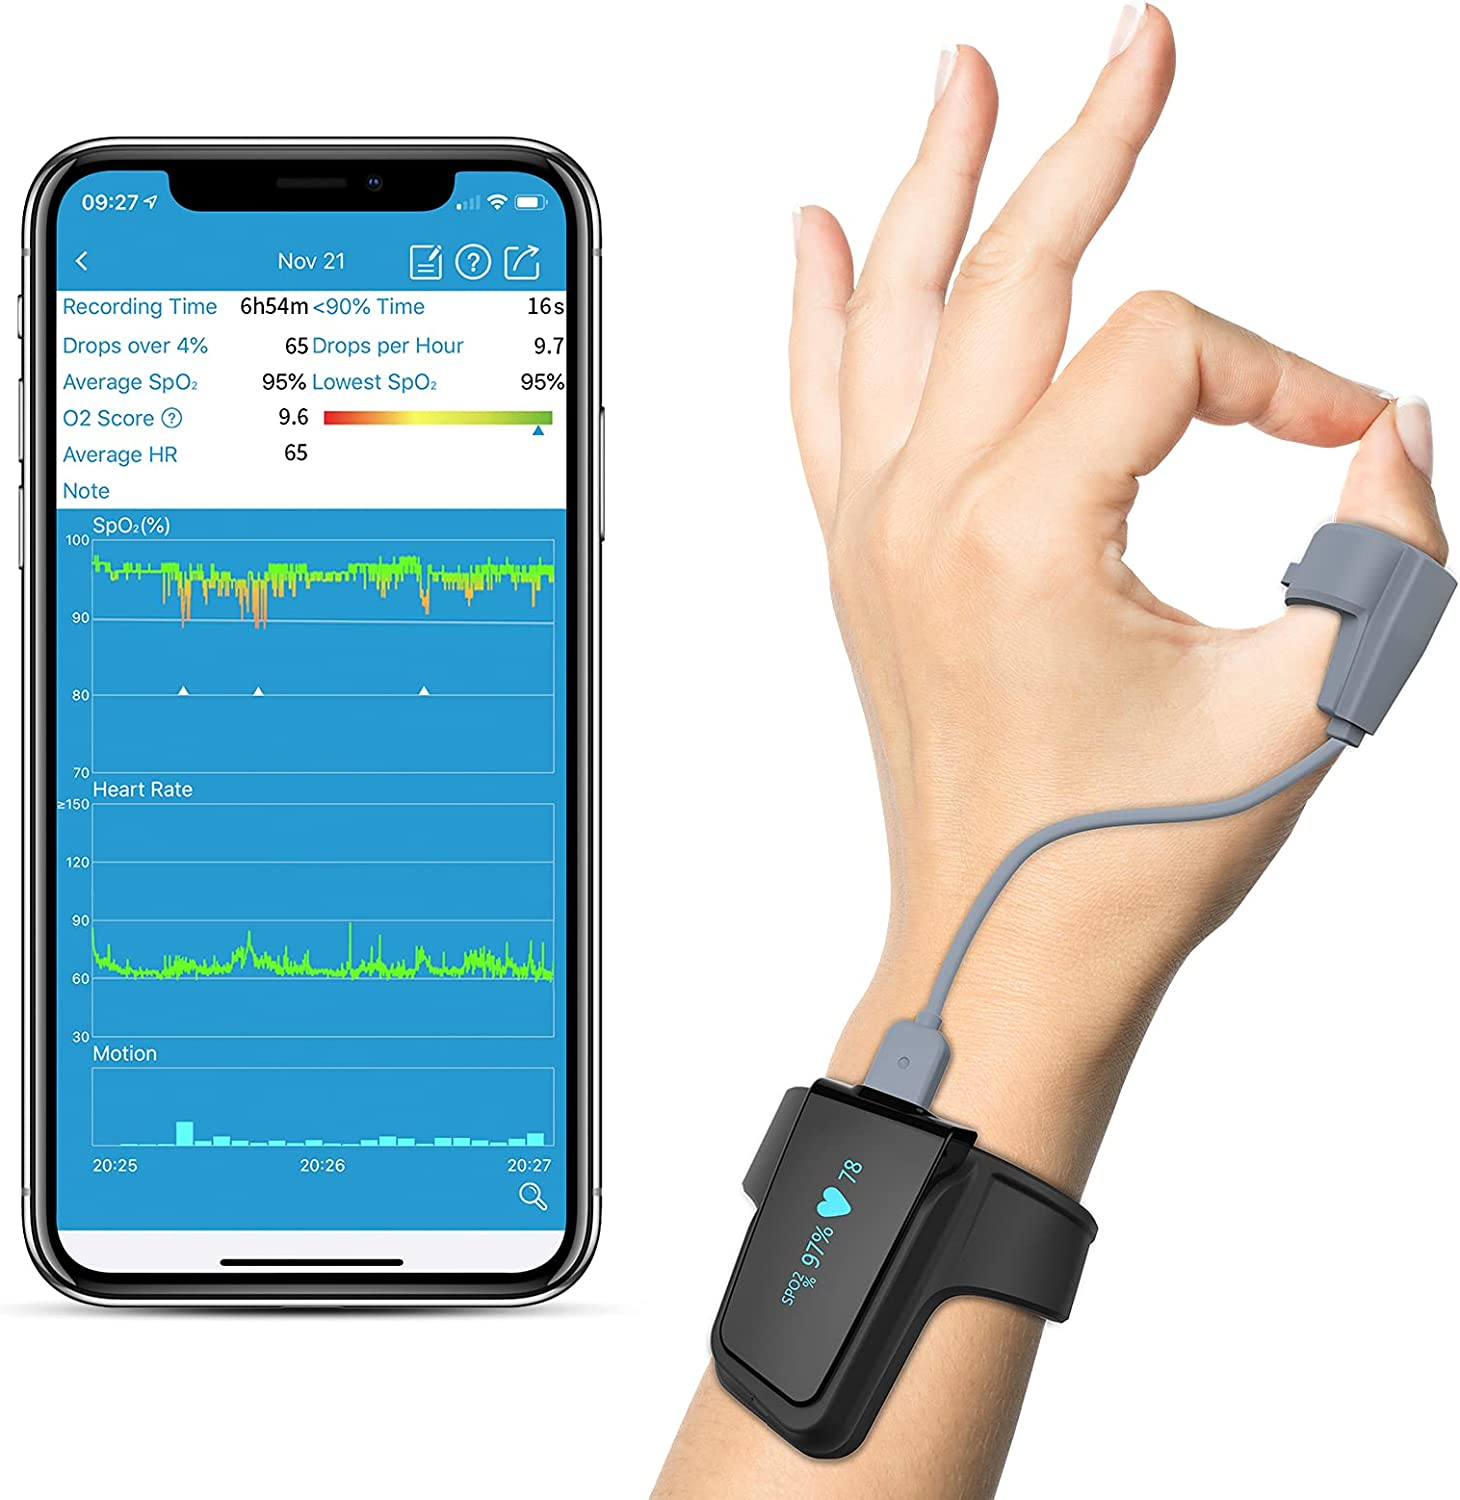 Wellue Wrist Wearable Sleep Monitor - Bluetooth Pulse Meter Health Tracker | Overnight O2 Saturation Level and Heart Rate, Smart Vibration & Audio Alert, Finger Ring with Free APP & PC Report